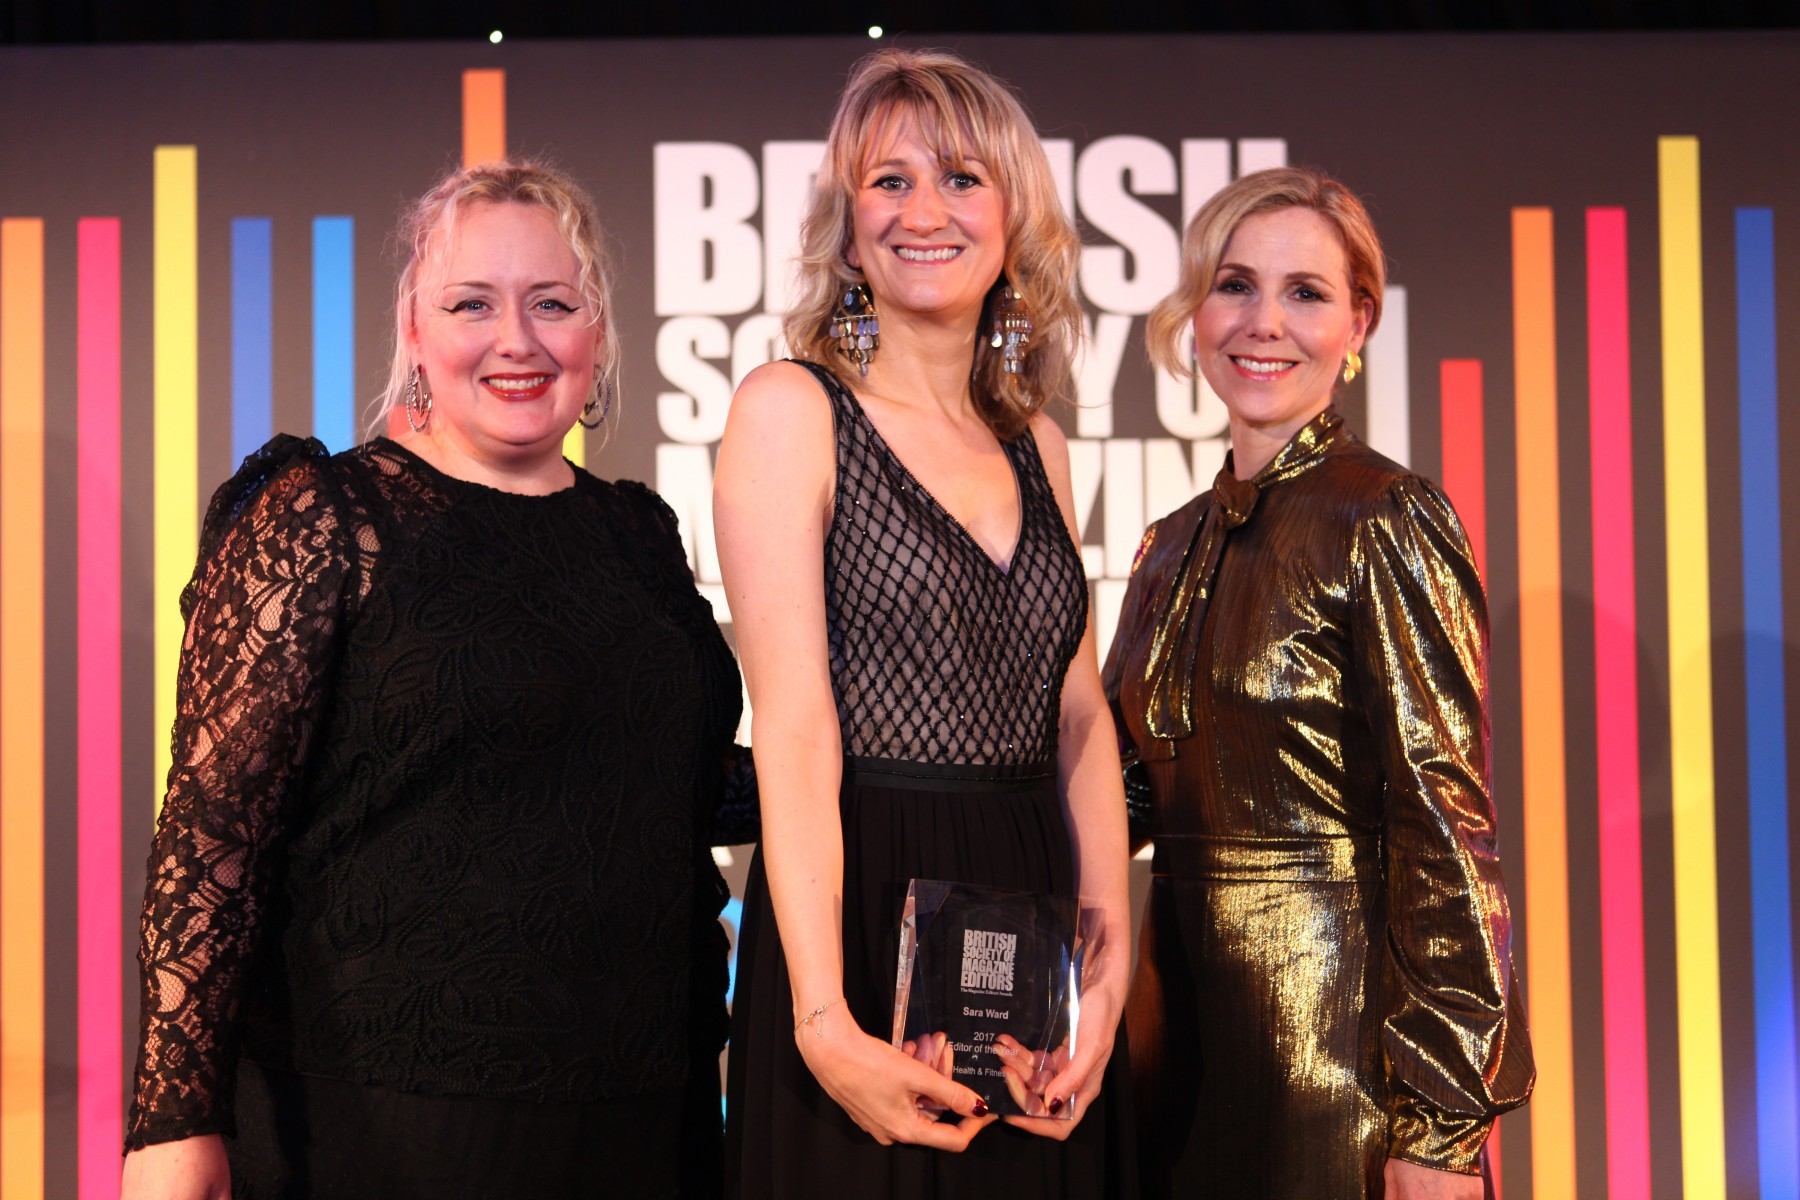 (L-R) BSME chair Catherine Westwood, Editor of Slimming World magazine Sara Ward, and actress Sally Phillips, who presented the award